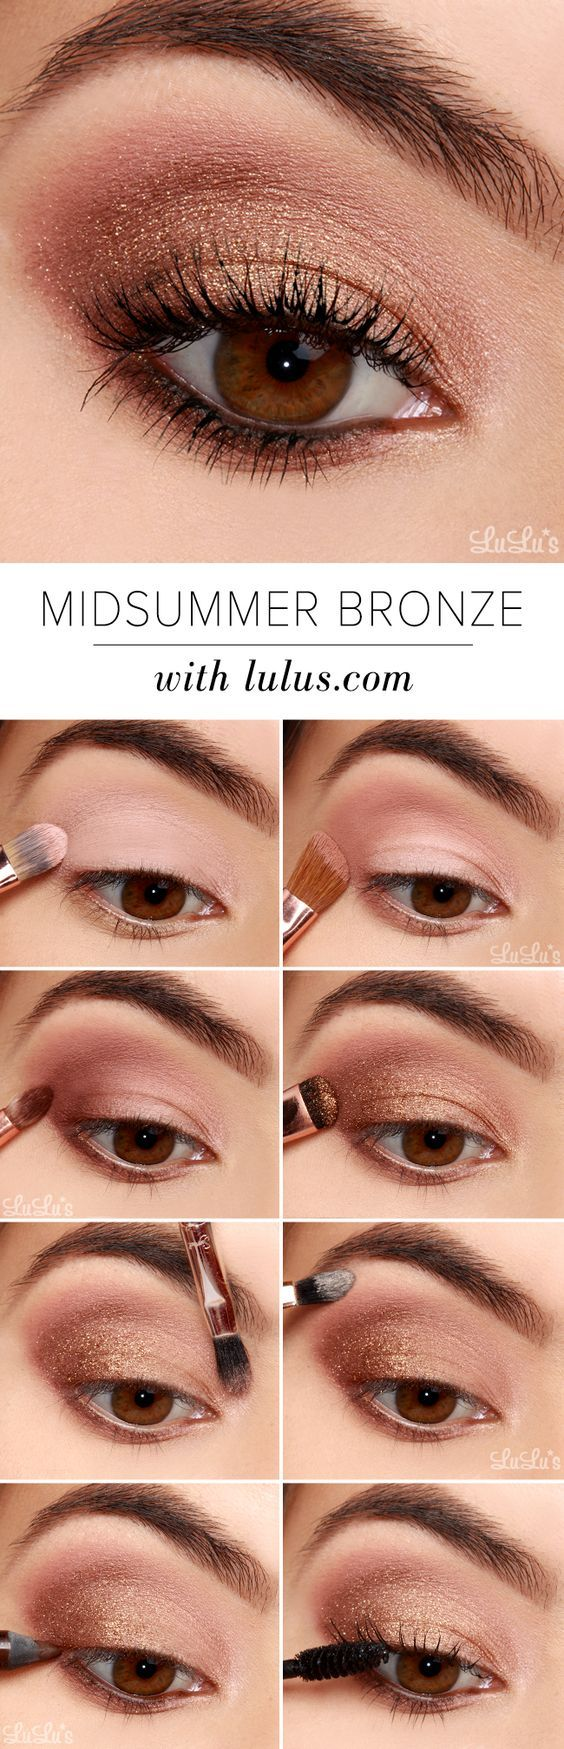 25 trending simple eyeshadow tutorial ideas on pinterest simple how to step by step eye makeup tutorials and guides for beginners ccuart Images